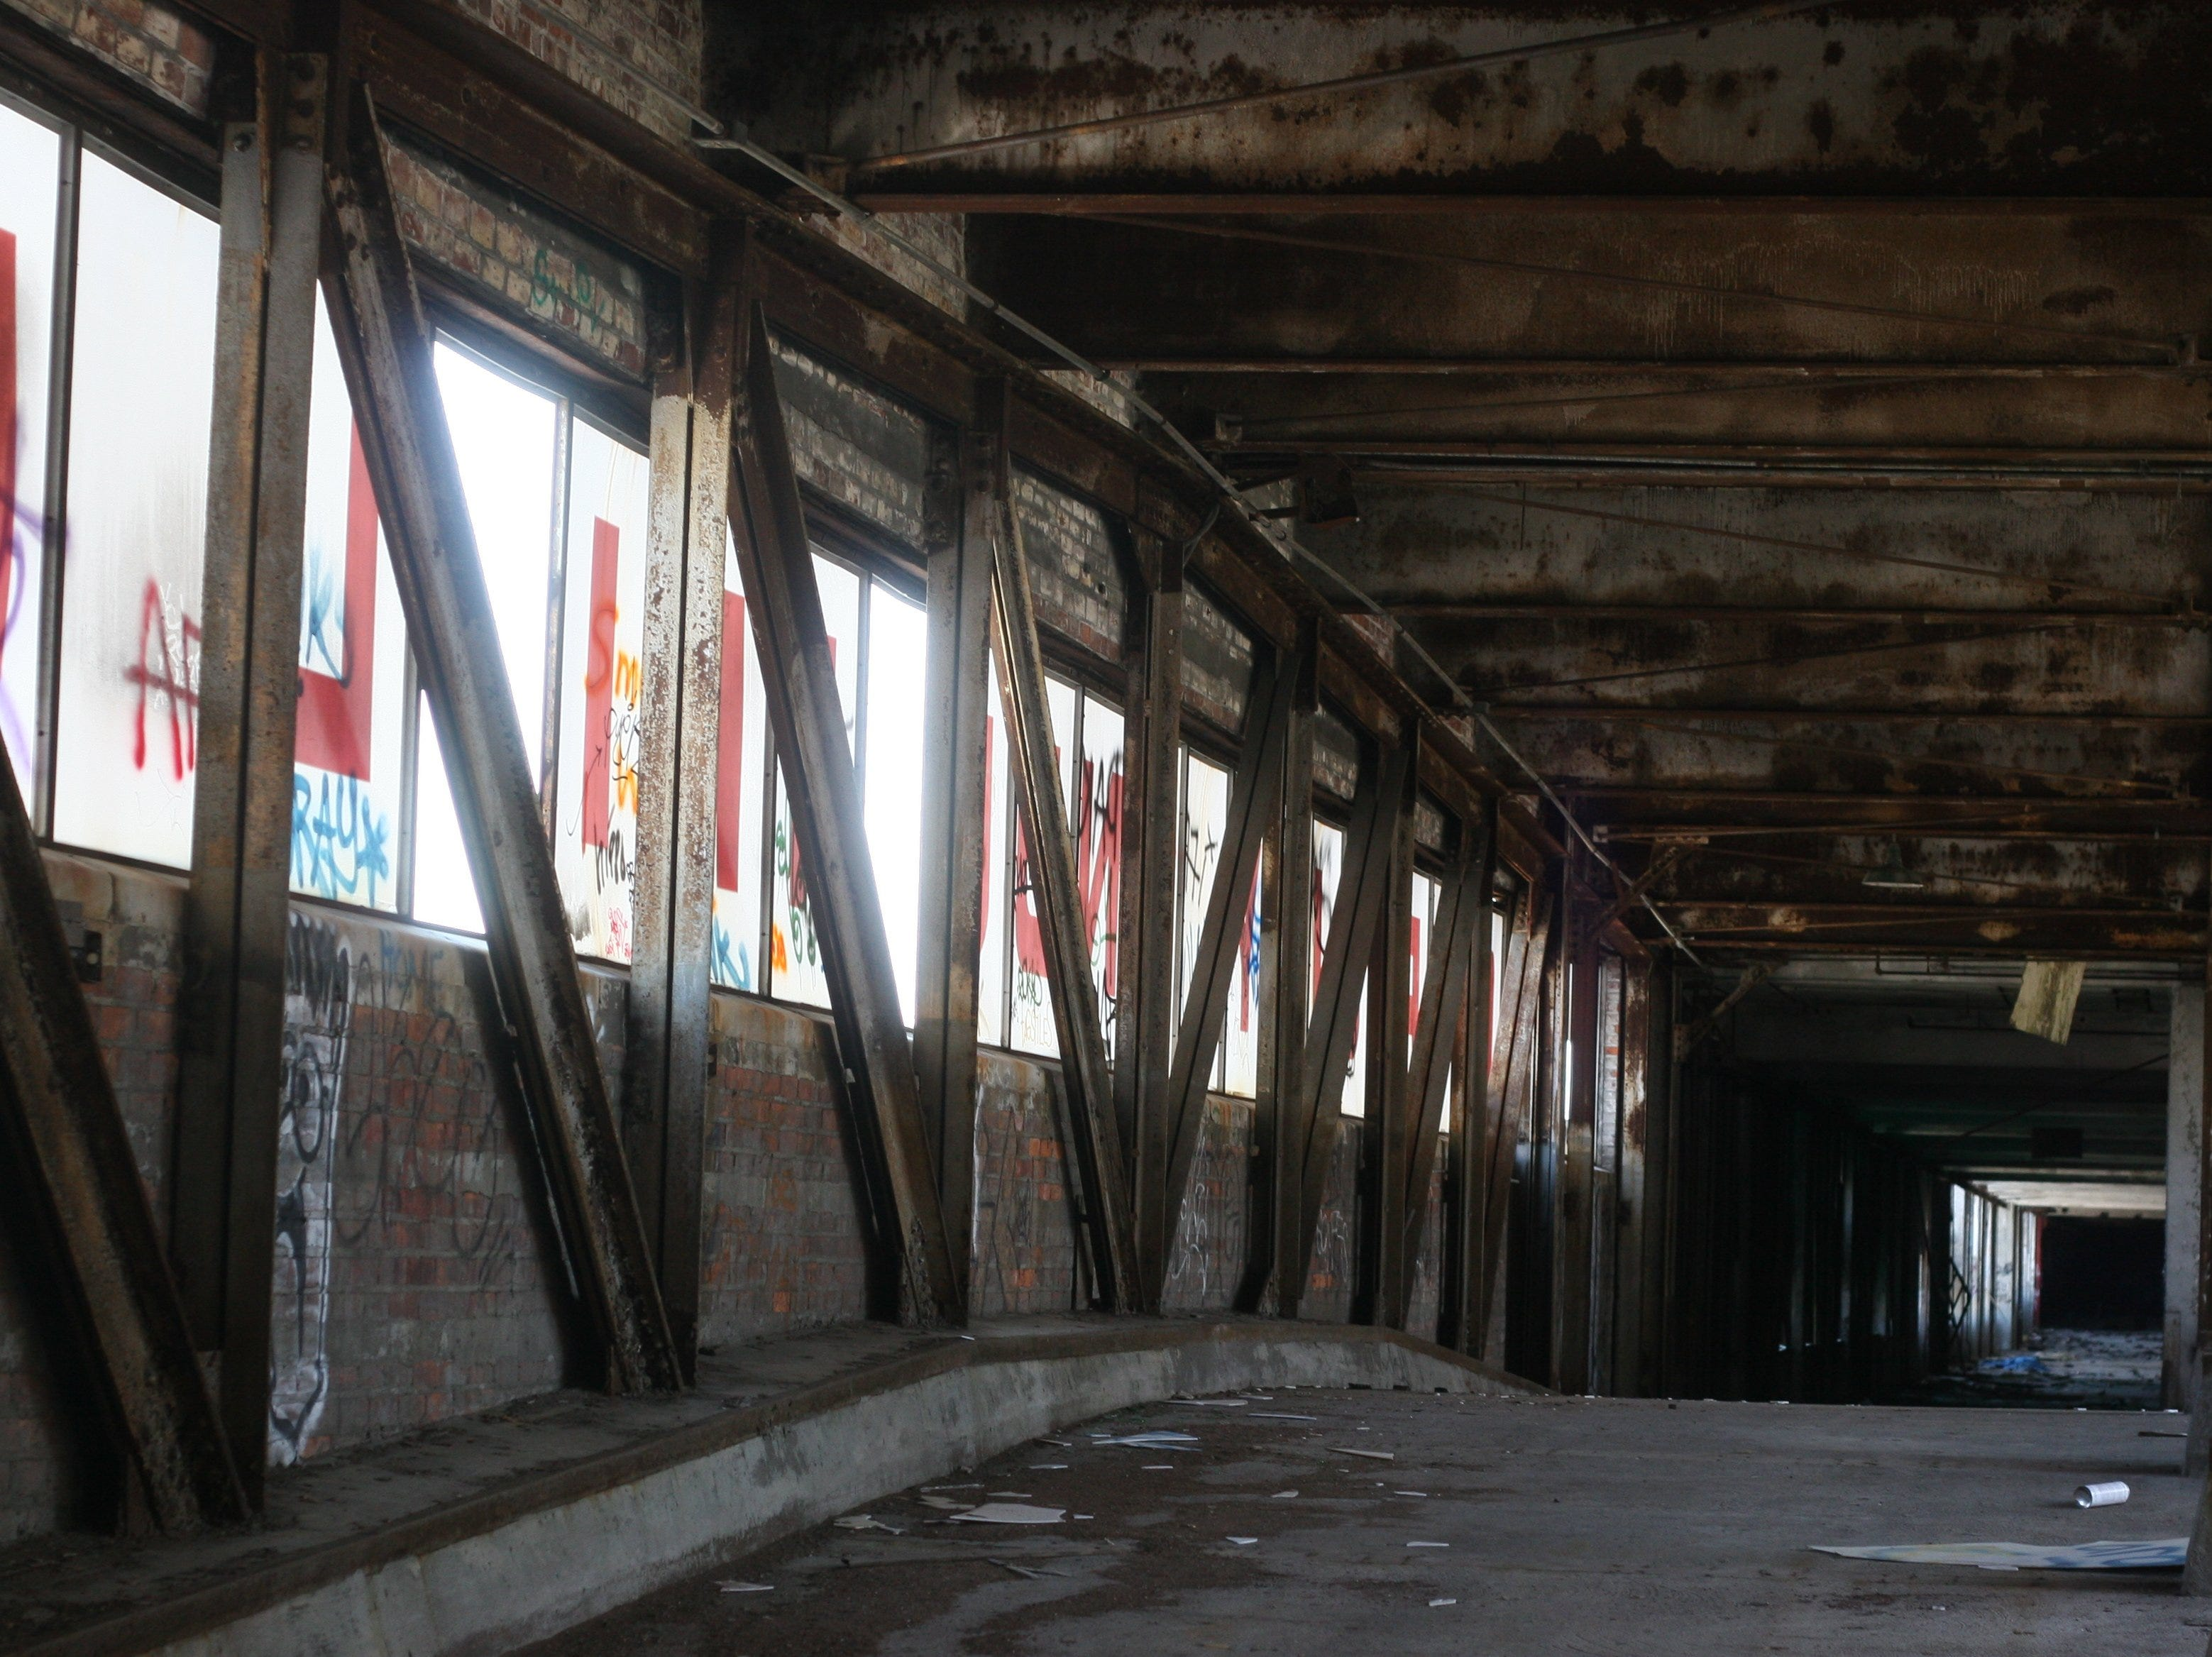 Interior of the bridge that connects the north and south complexes of the deteriorating Packard Plant on East Grand Blvd. in Detroit on Wednesday April 23, 2008.